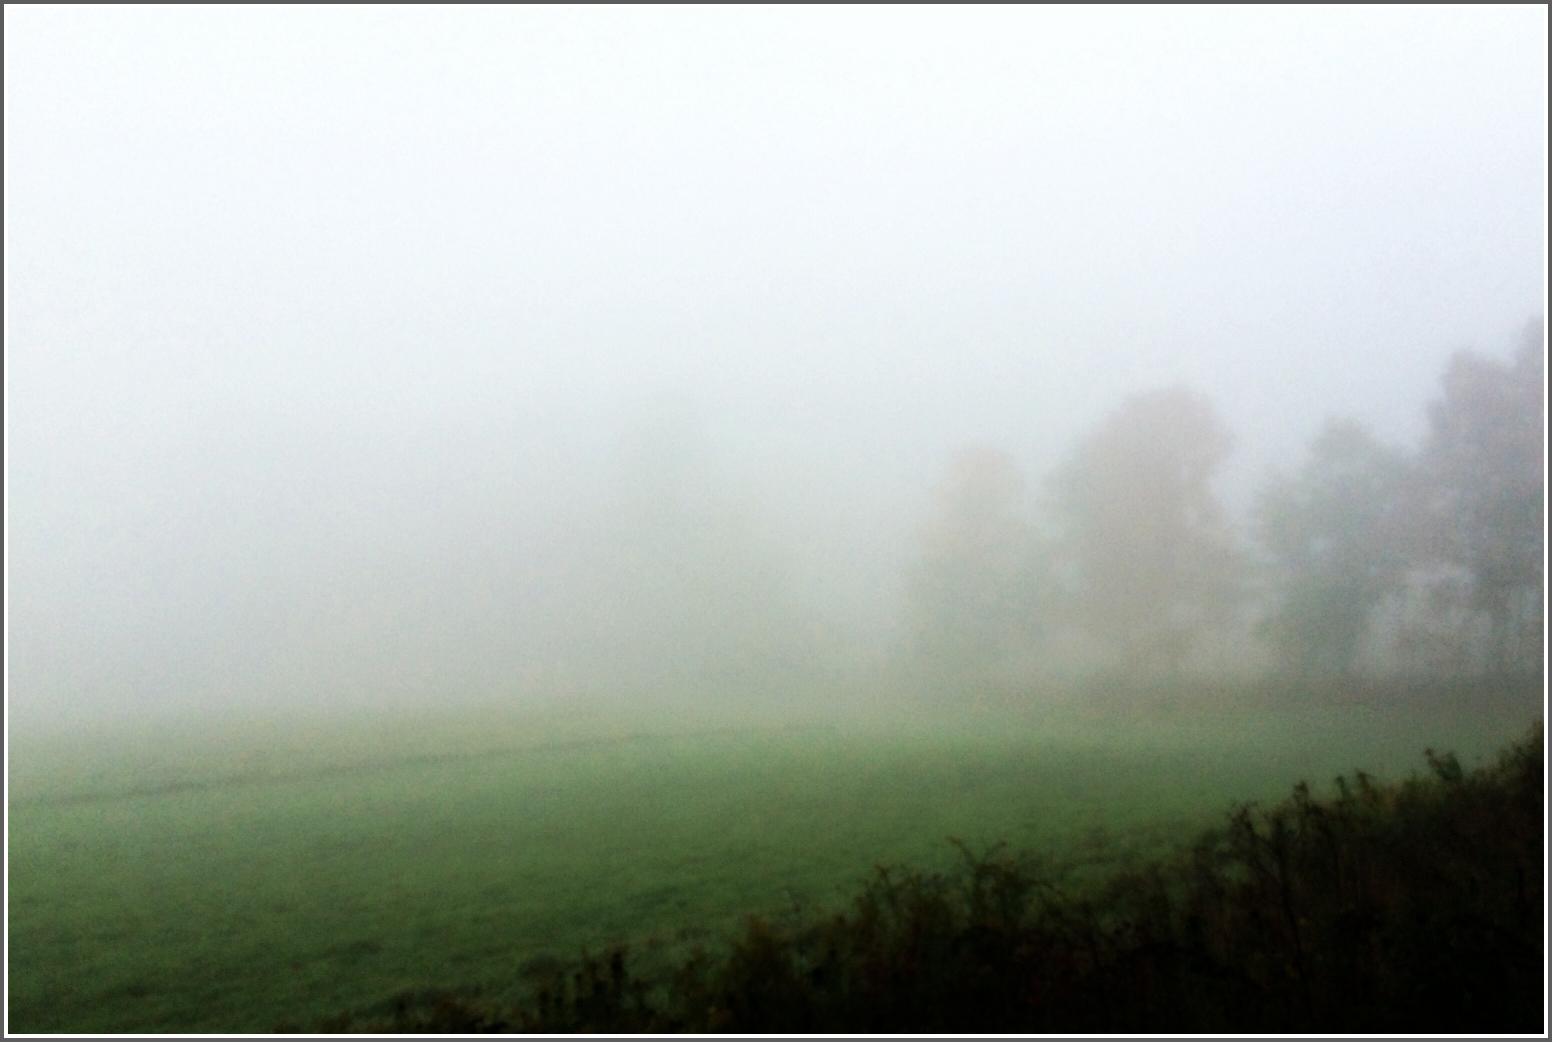 Field in Mist by Dena T BrayⒸ